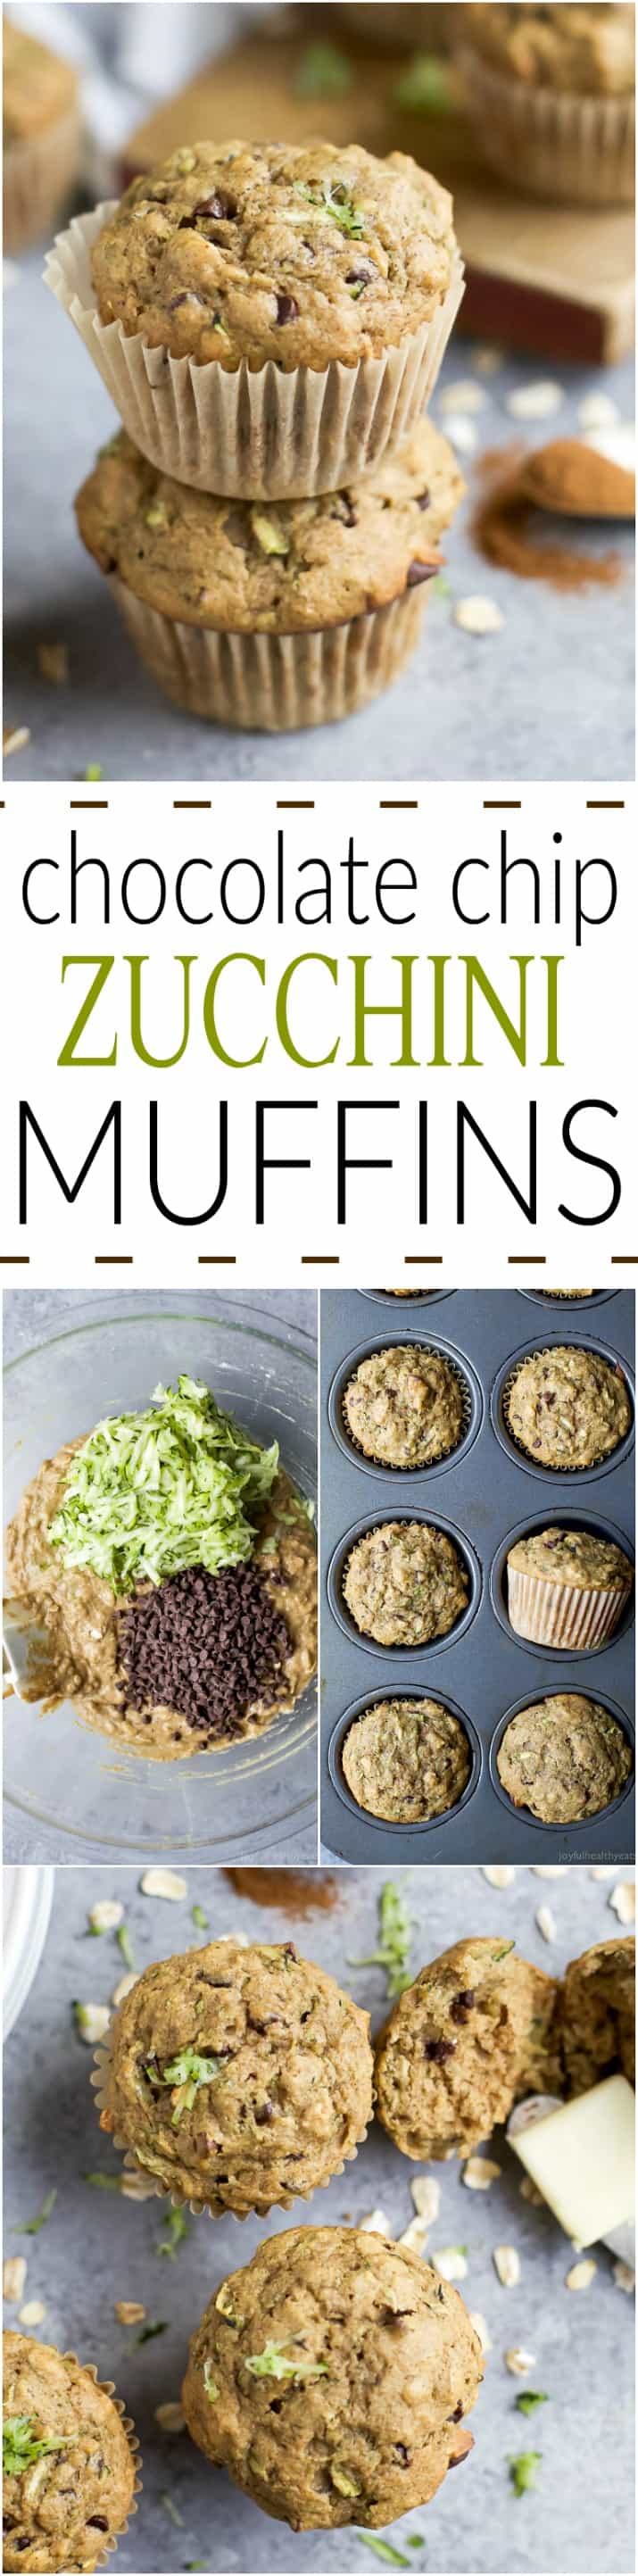 Pinterest collage for Chocolate Chip Zucchini Muffins recipe